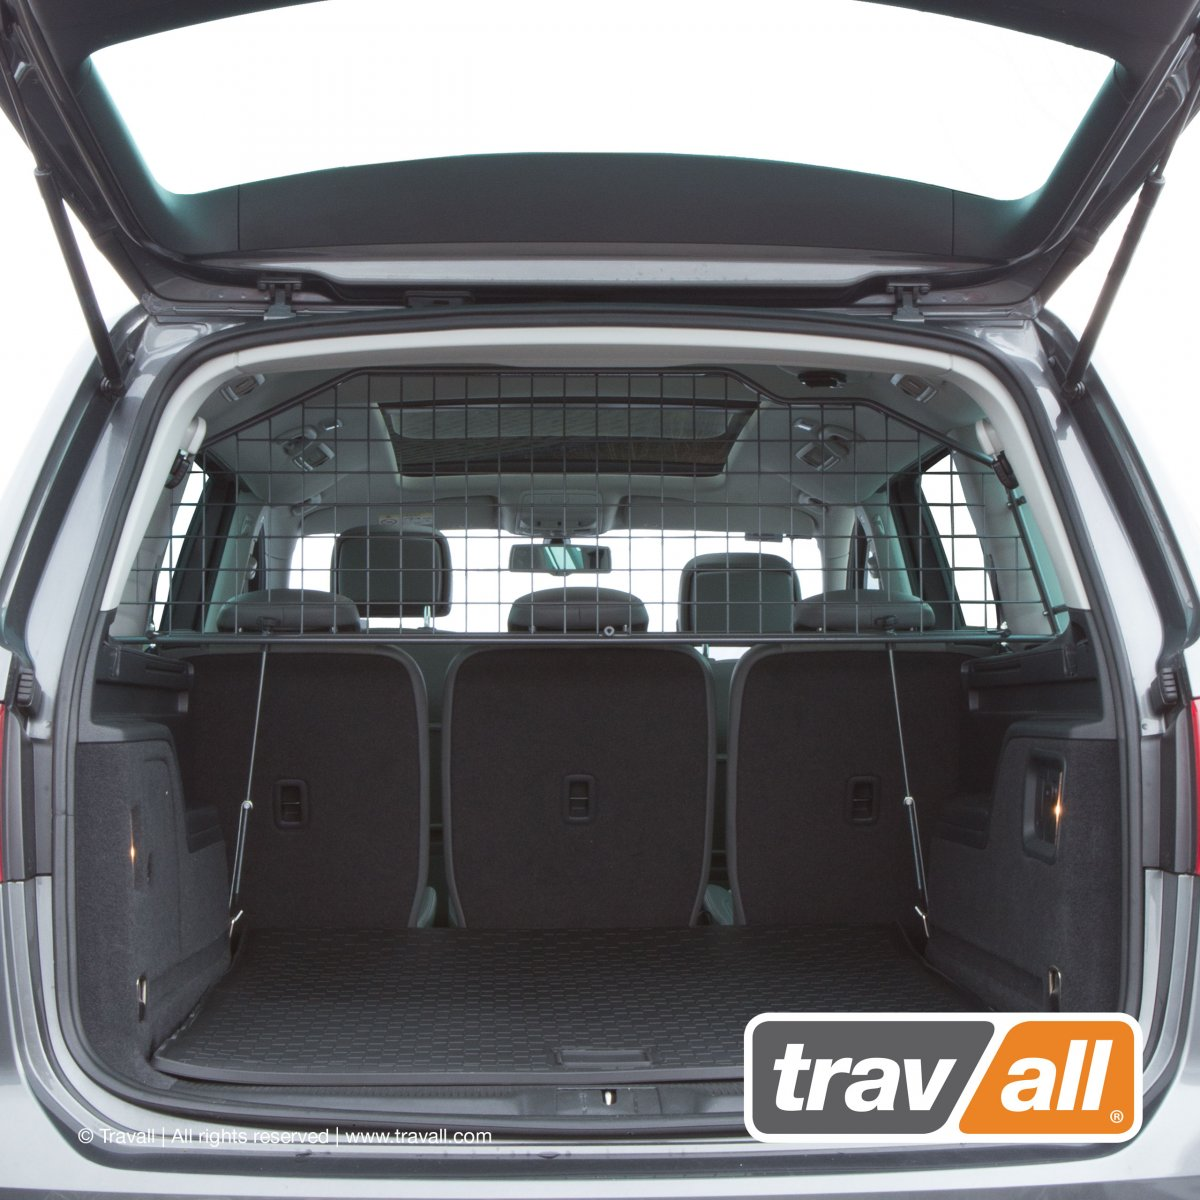 Travall®GUARD for SEAT Alhambra / Volkswagen Sharan (2010 >)